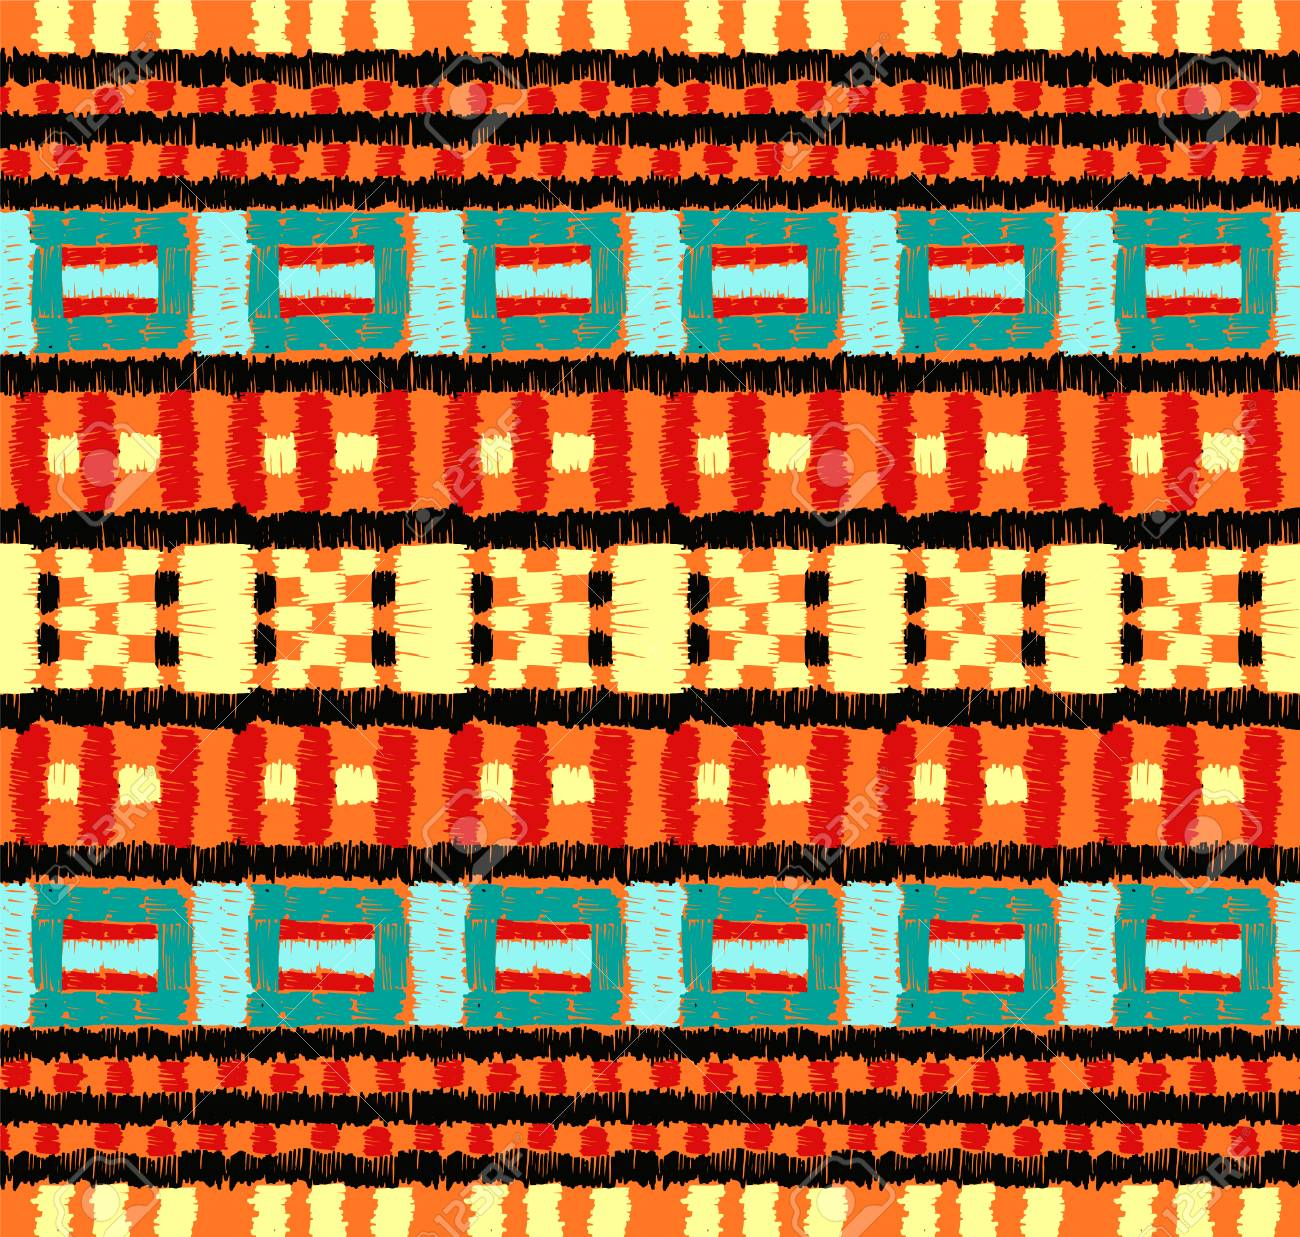 Aztec Tapijt Tribal Vector Ornament Seamless African Pattern Ethnic Carpet With Chevrons Aztec Style Geometric Mosaic On The Tile Majolica Ancient Interior